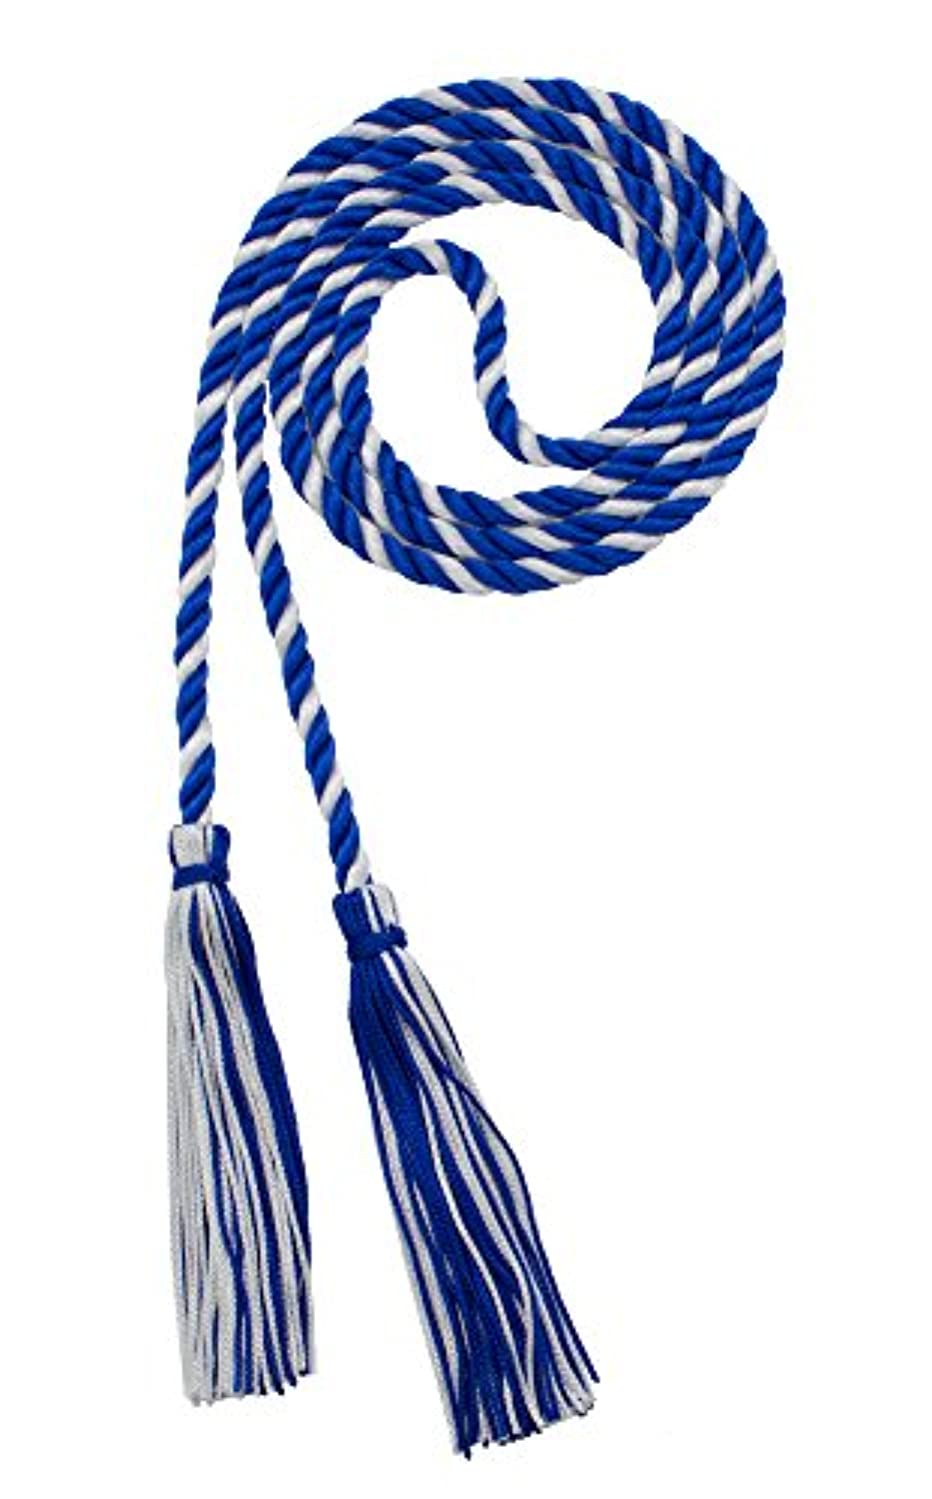 HONOR CORD ROYAL/WHITE - TASSEL DEPOT BRAND - MADE IN USA